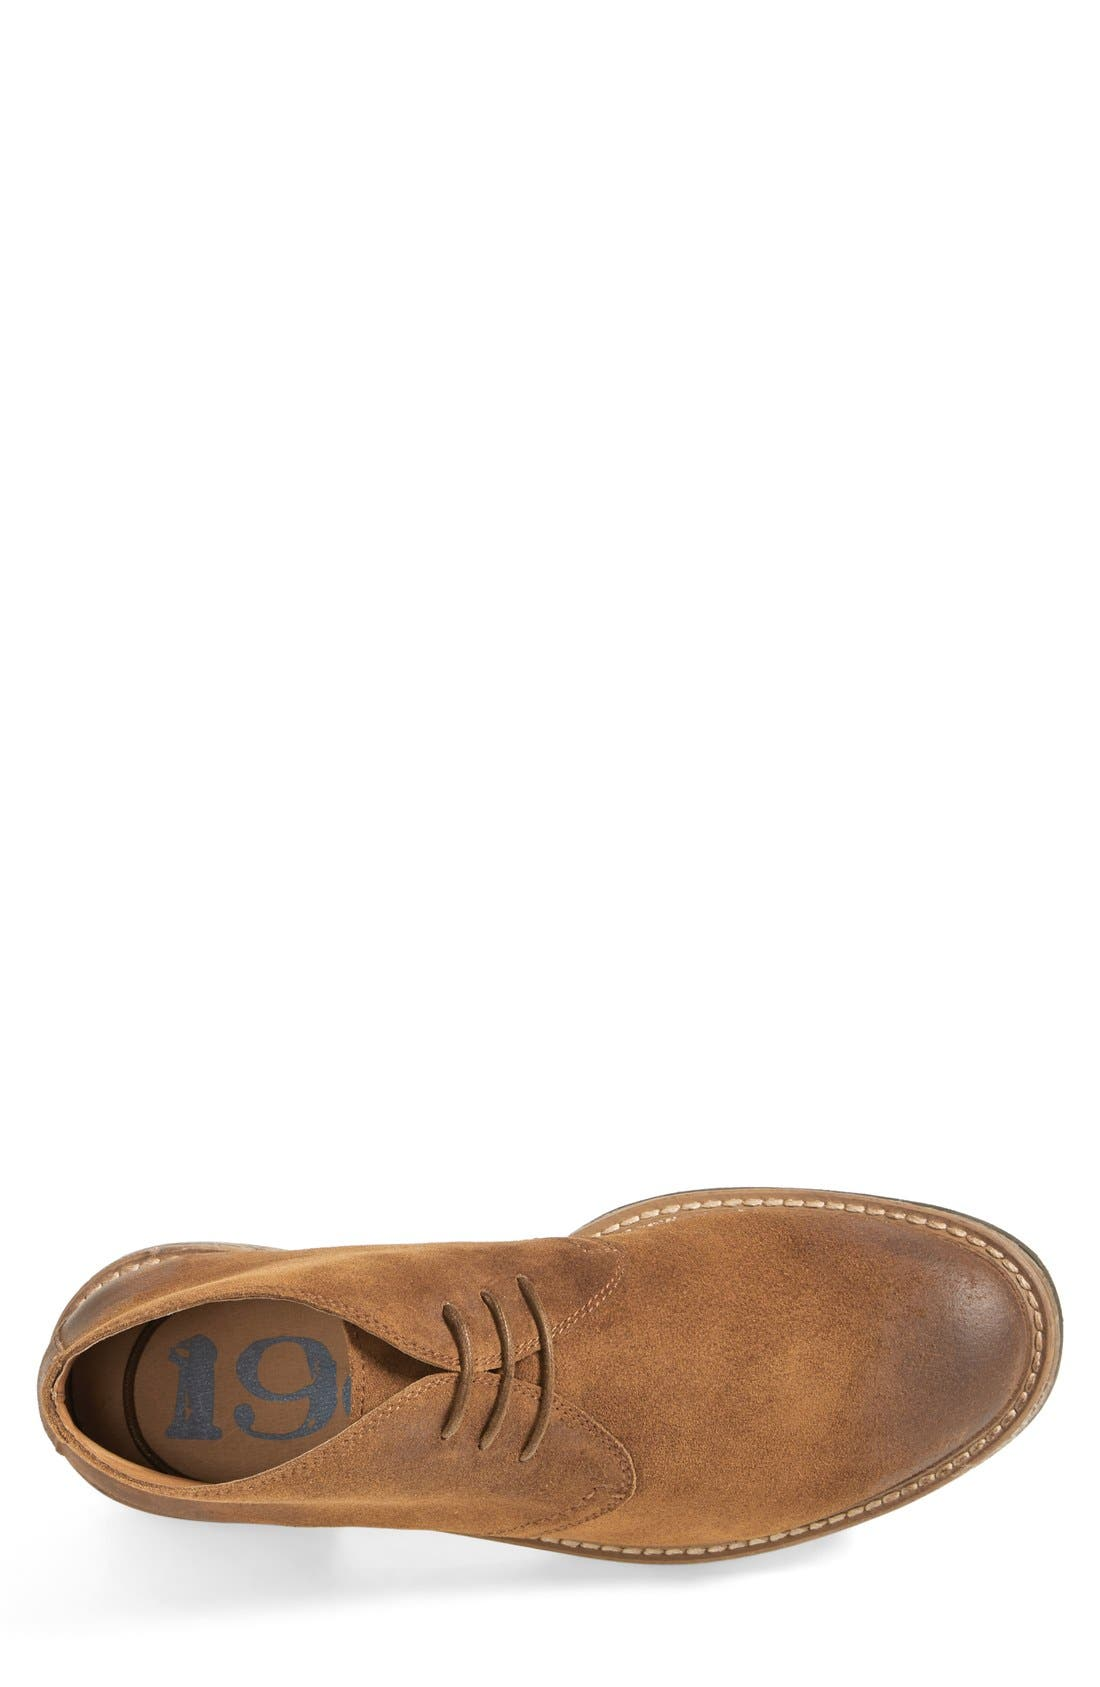 'Canyon' Chukka Boot,                             Alternate thumbnail 8, color,